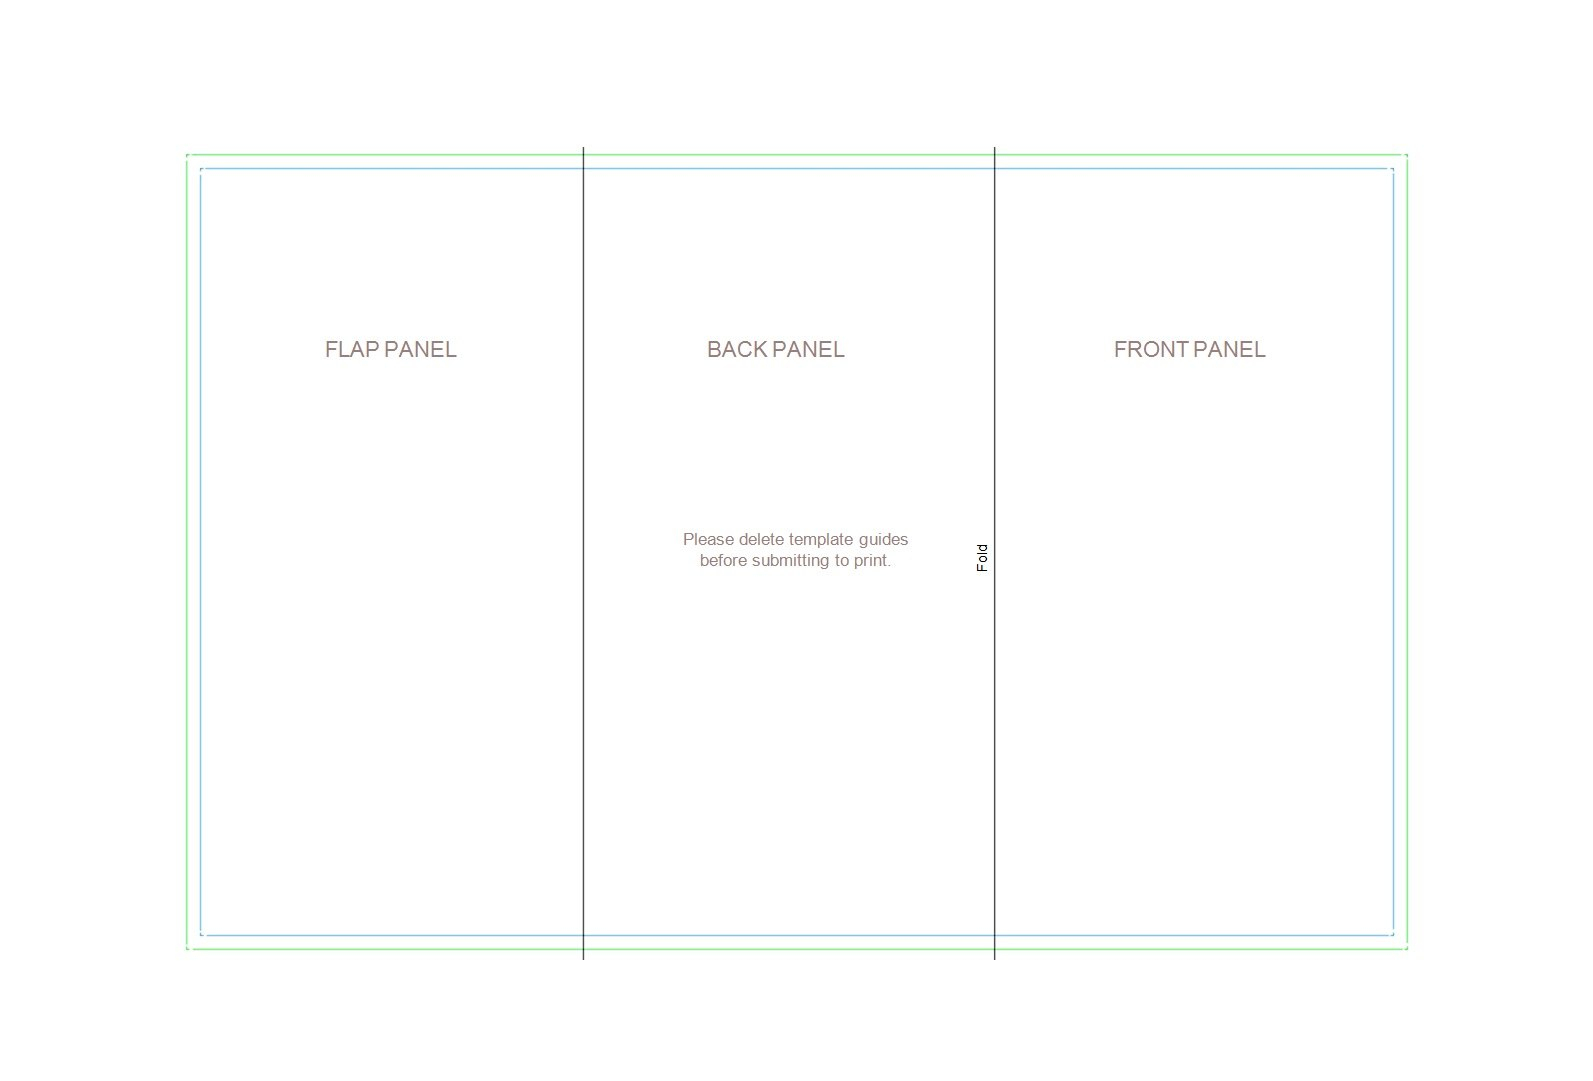 Free Pamphlet Templates Word  Google Docs ᐅ Template Lab Inside Tri Fold Brochure Template Google Docs